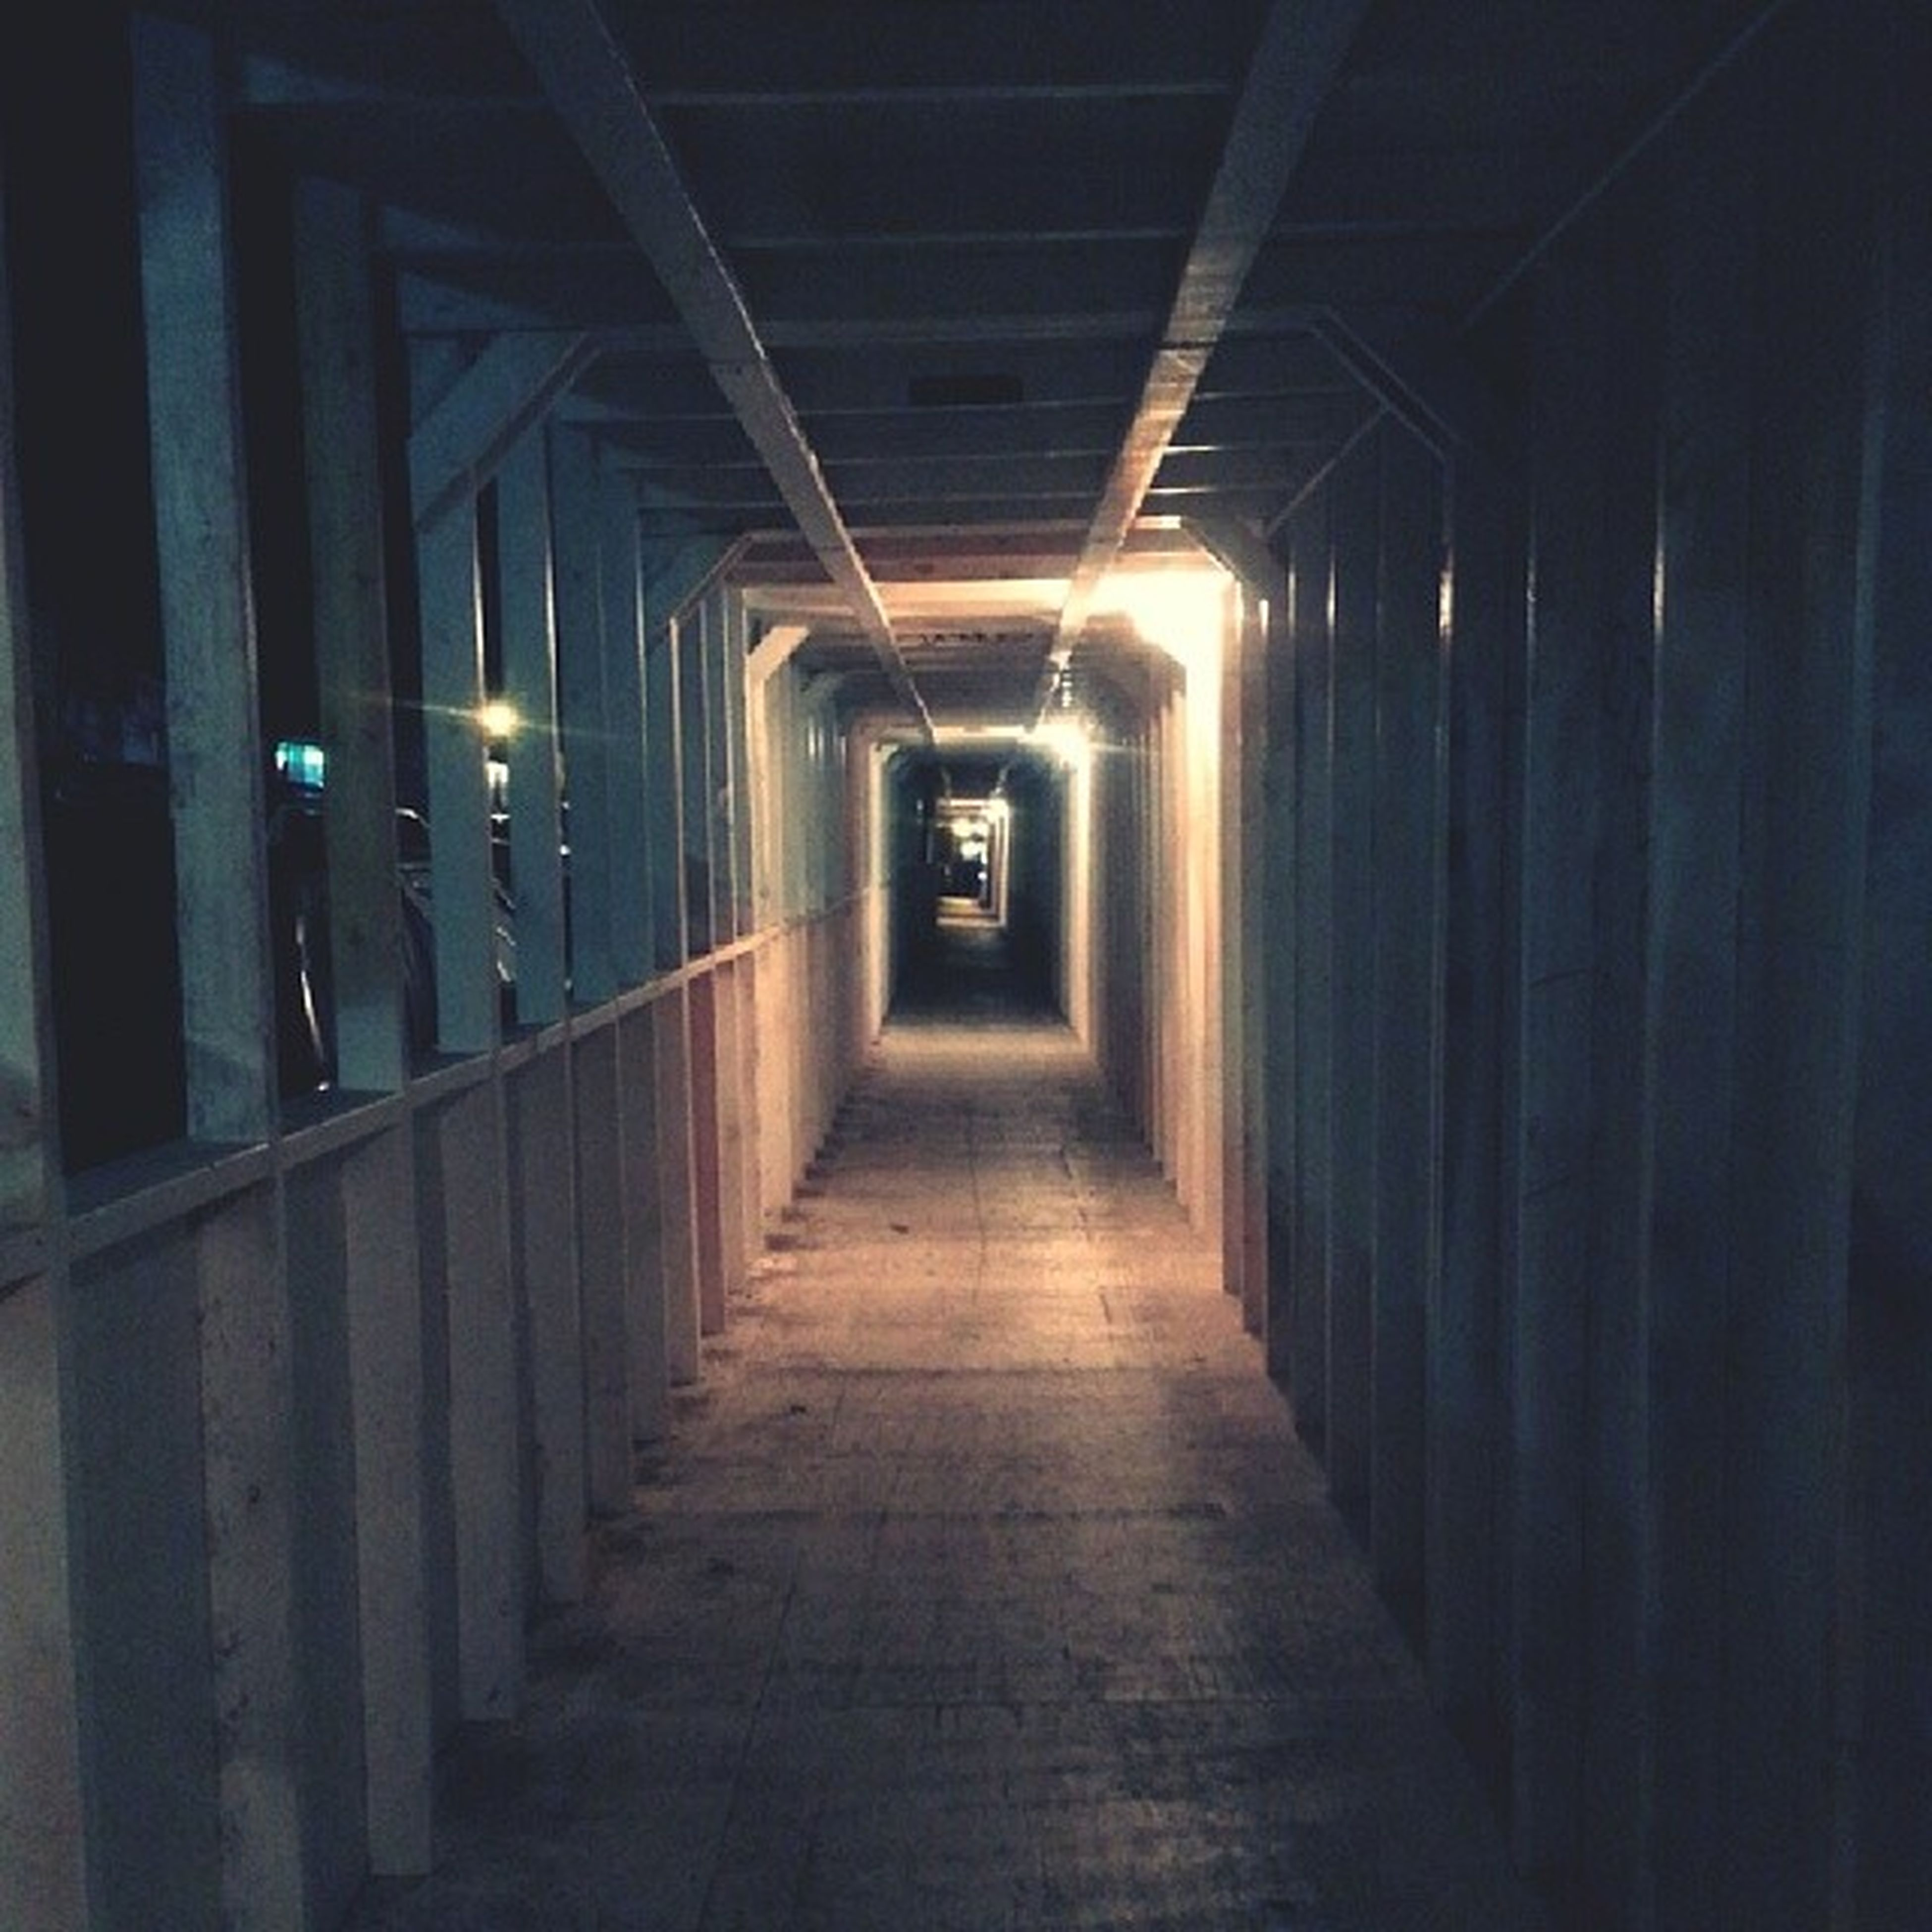 indoors, the way forward, illuminated, corridor, diminishing perspective, architecture, built structure, vanishing point, architectural column, ceiling, lighting equipment, empty, in a row, narrow, night, column, flooring, colonnade, walkway, long